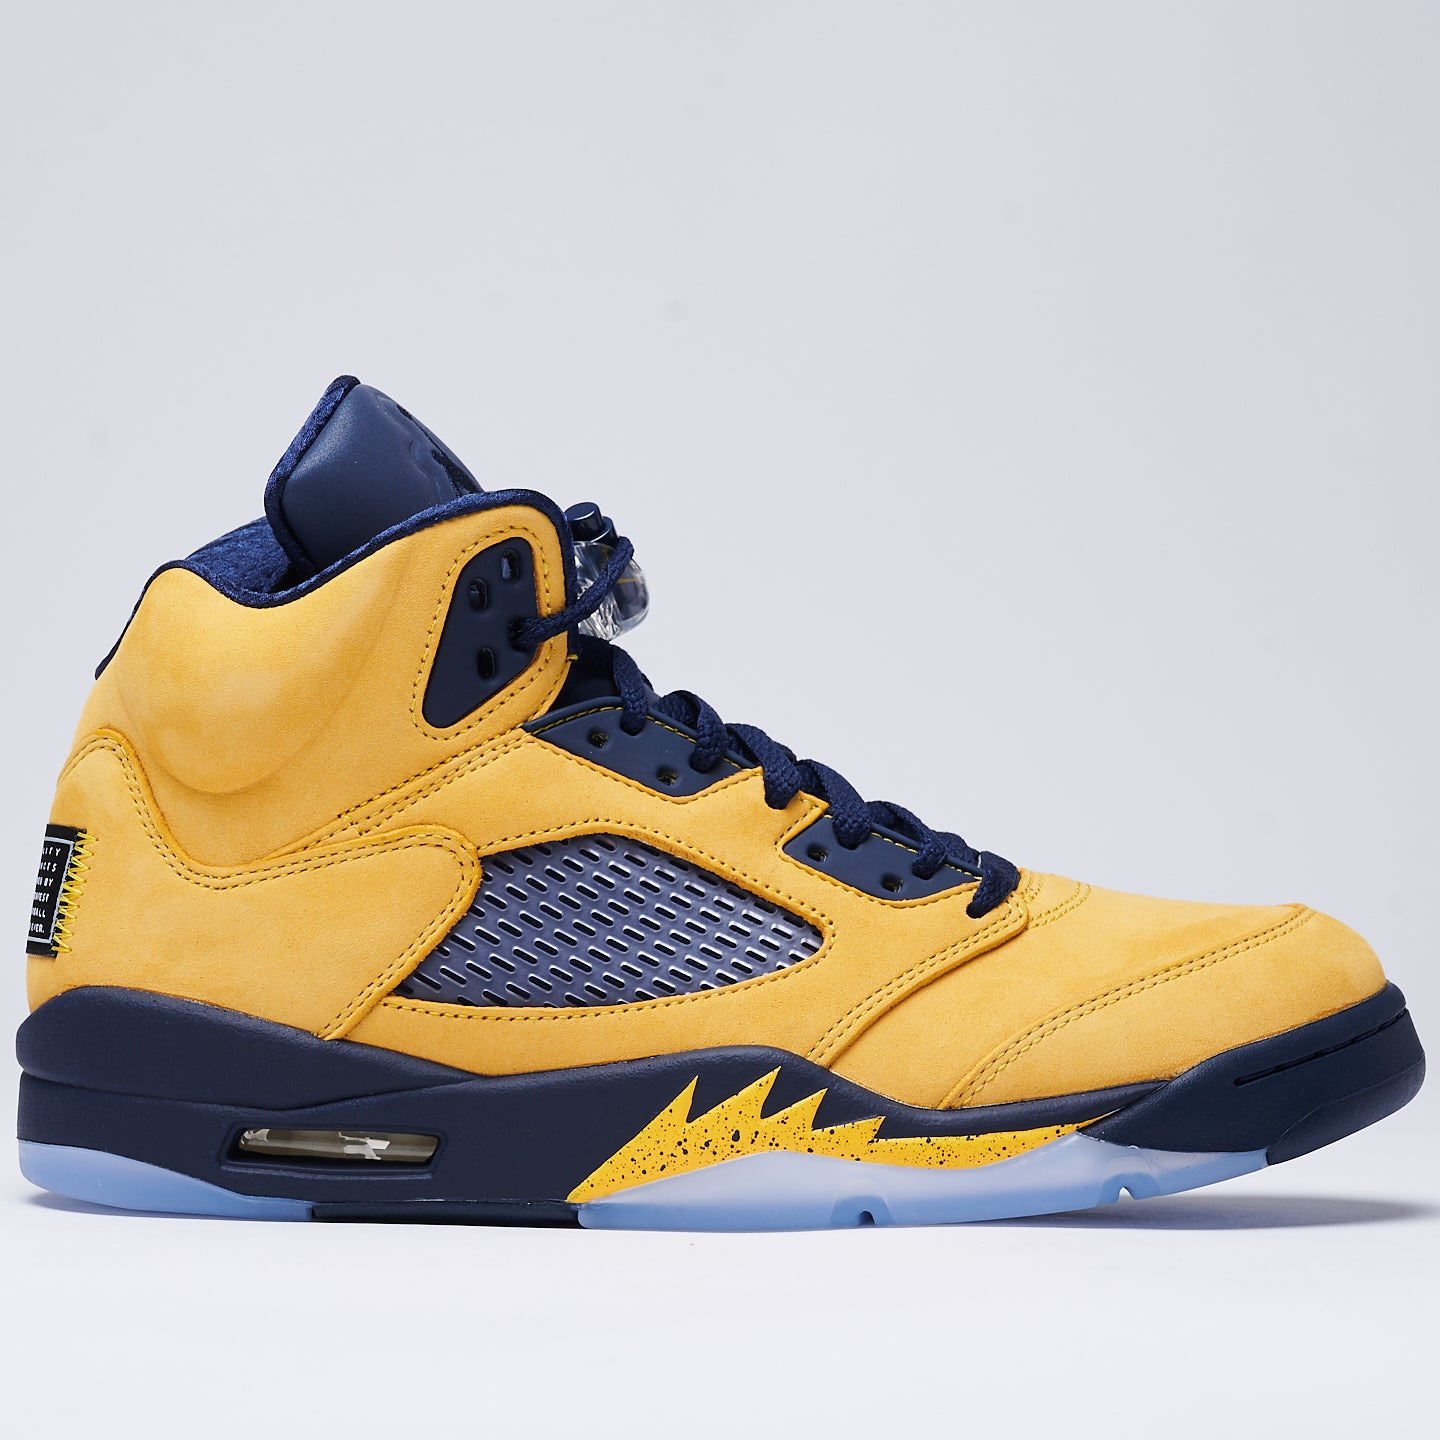 JORDAN 5 RETRO SP - AMARILLO/COLLEGE NAVY